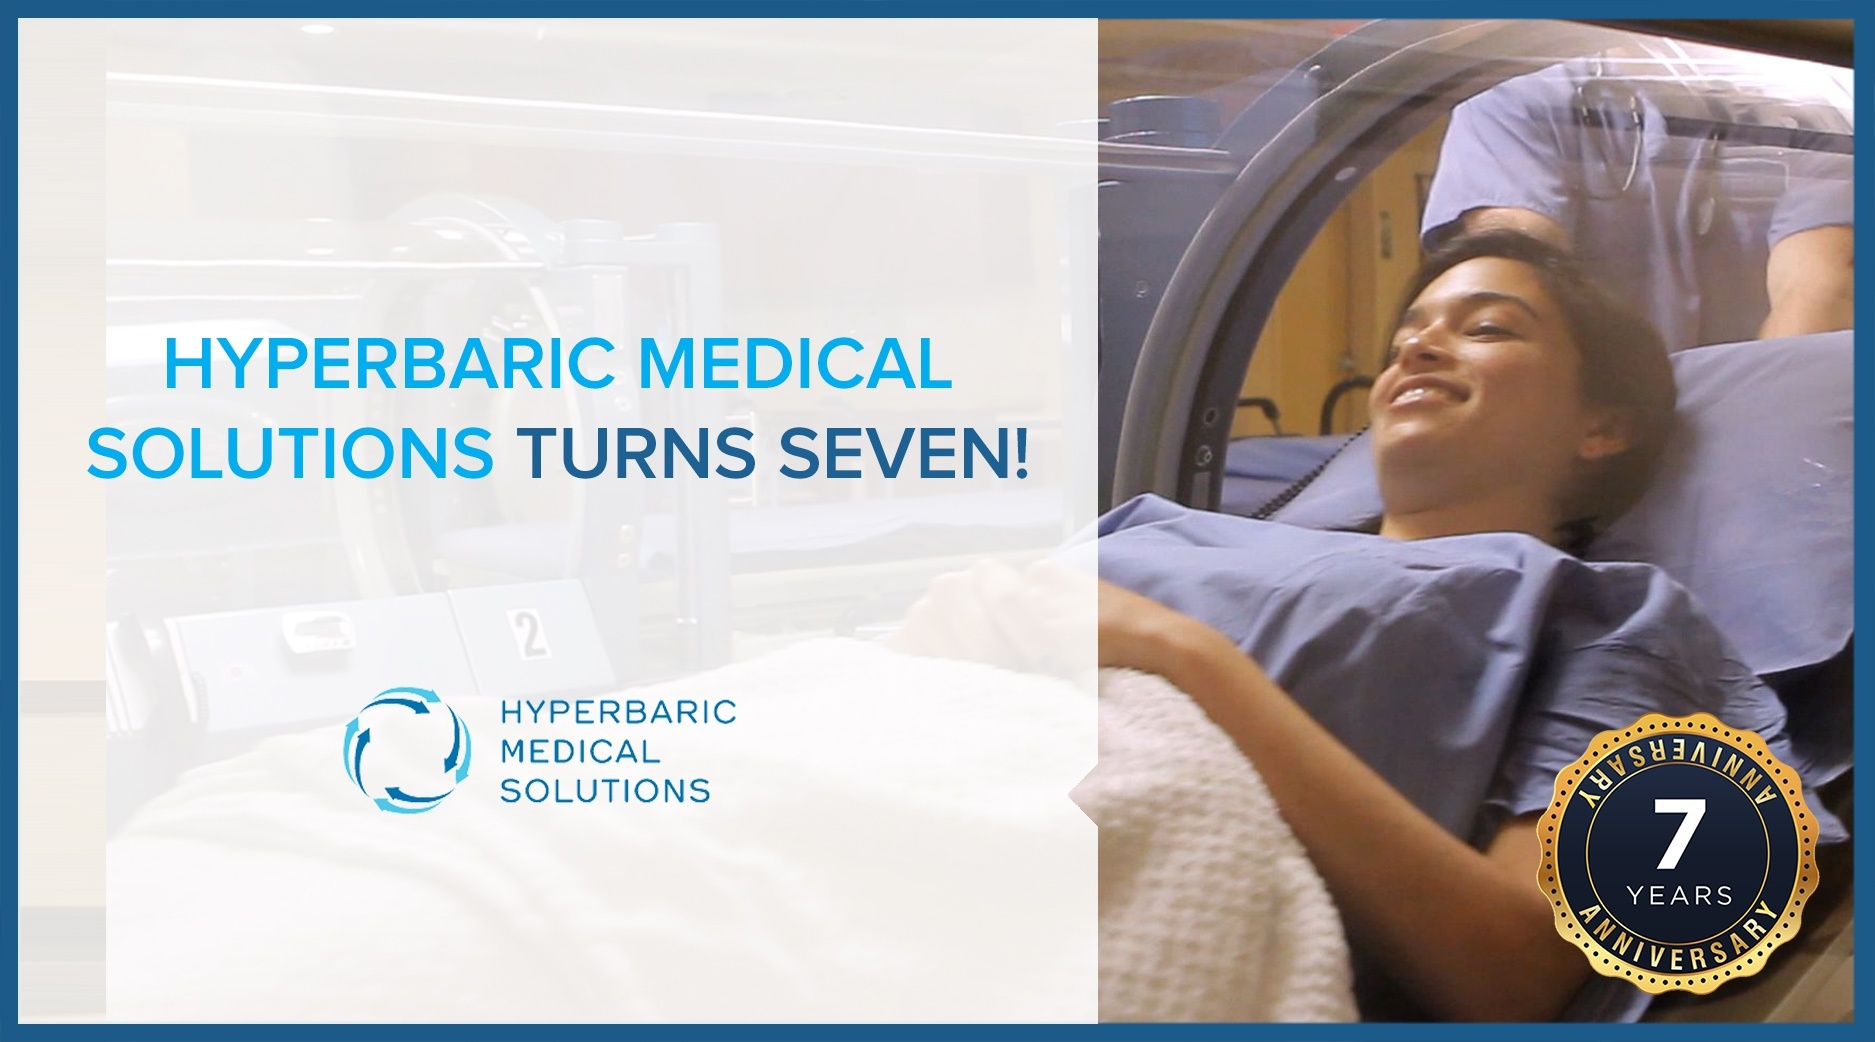 HYPERBARIC MEDICAL SOLUTIONS TURNS SEVEN!